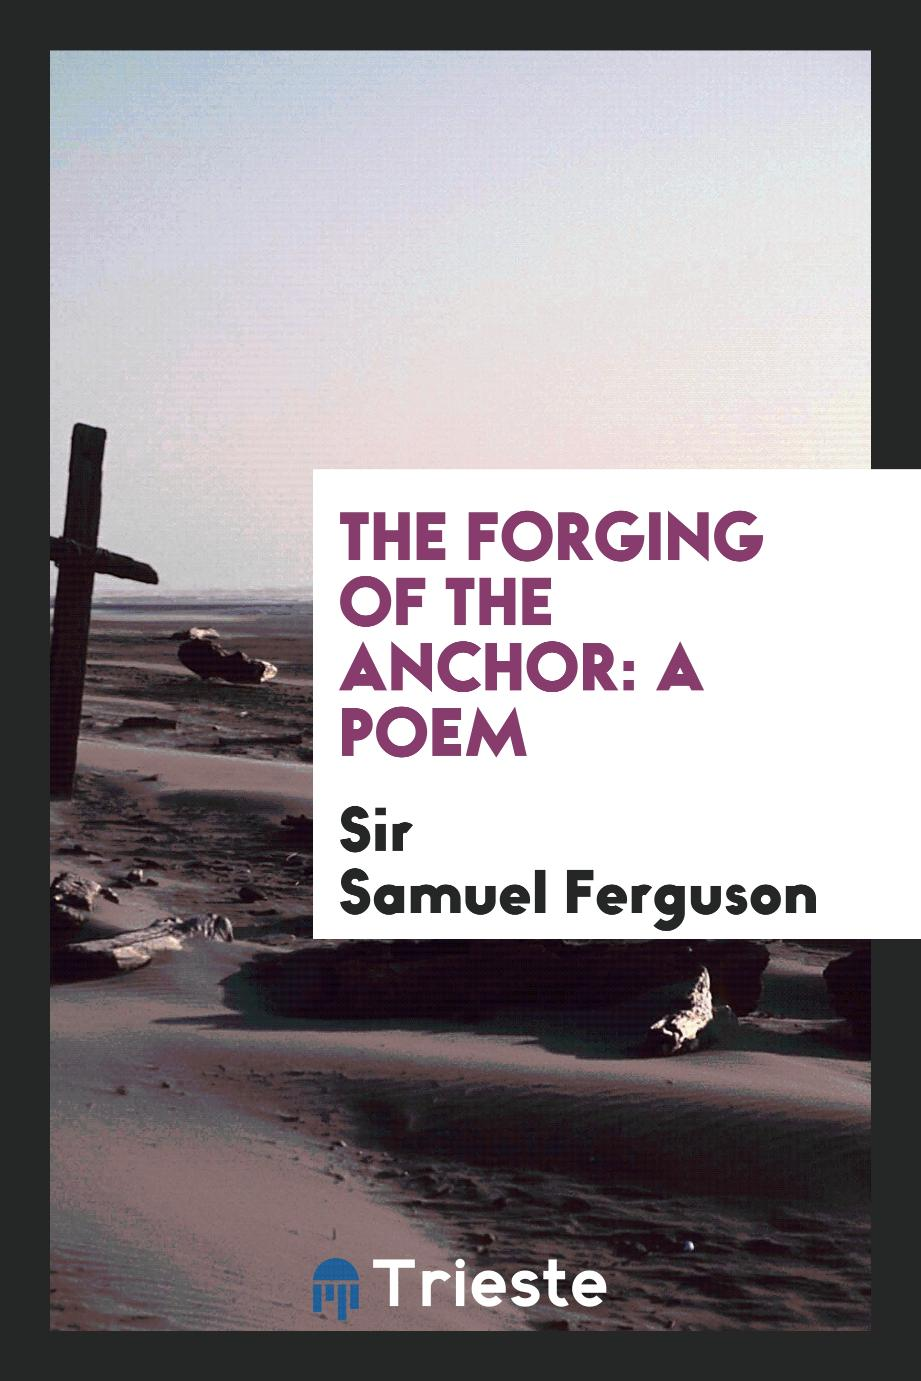 The forging of the anchor: a poem